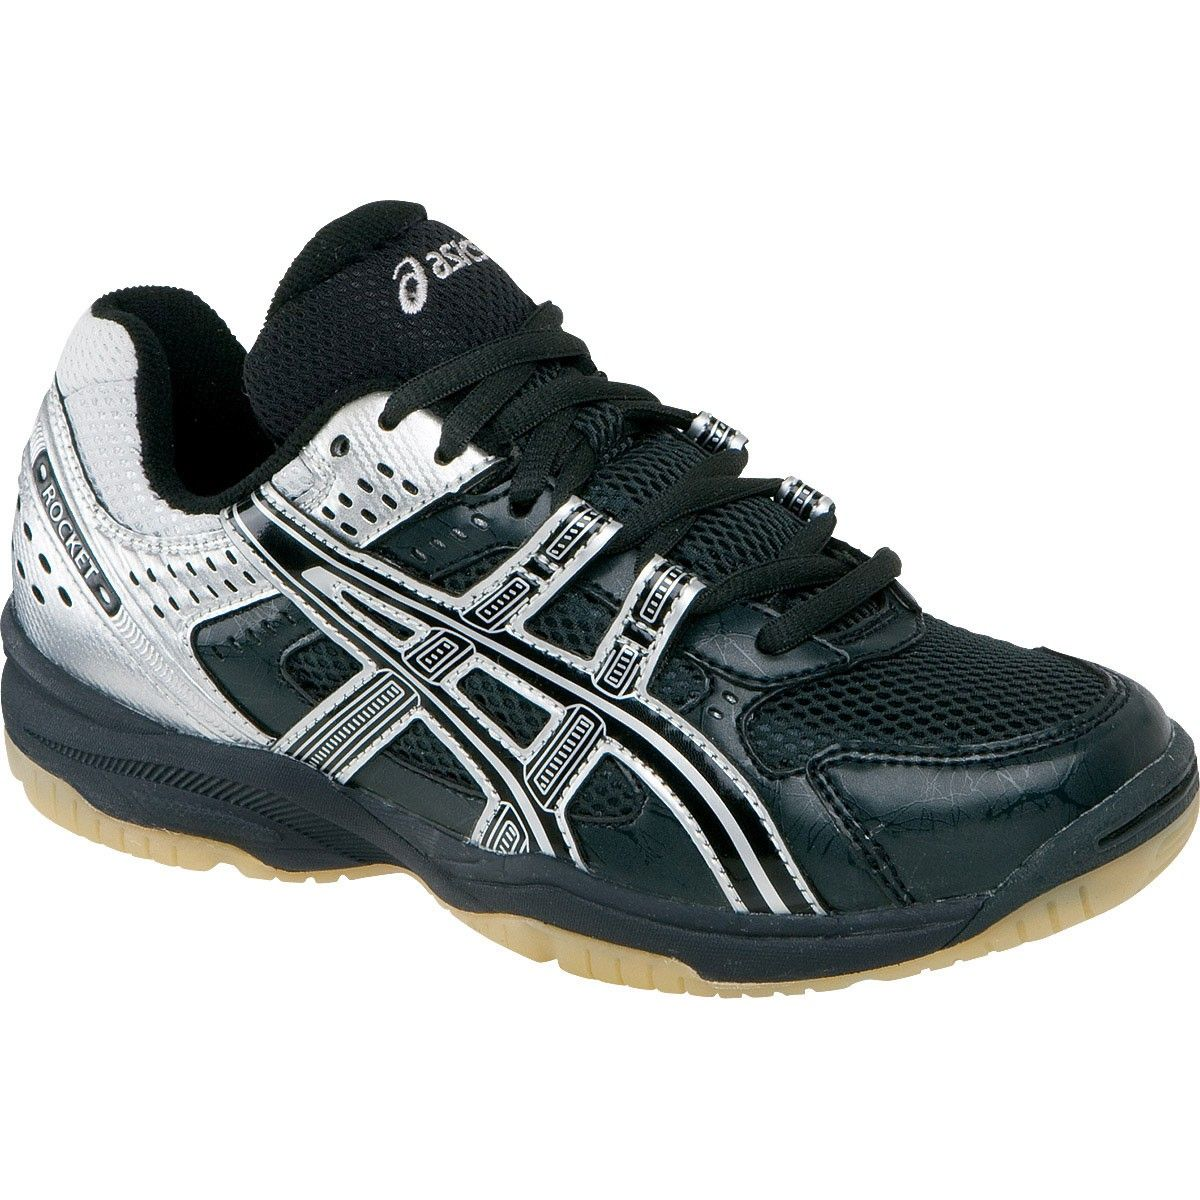 Asics Gel Rocket 6 Gs Youth Volleyball Shoes Volleyball Shoes Toddler Shoes Shoes